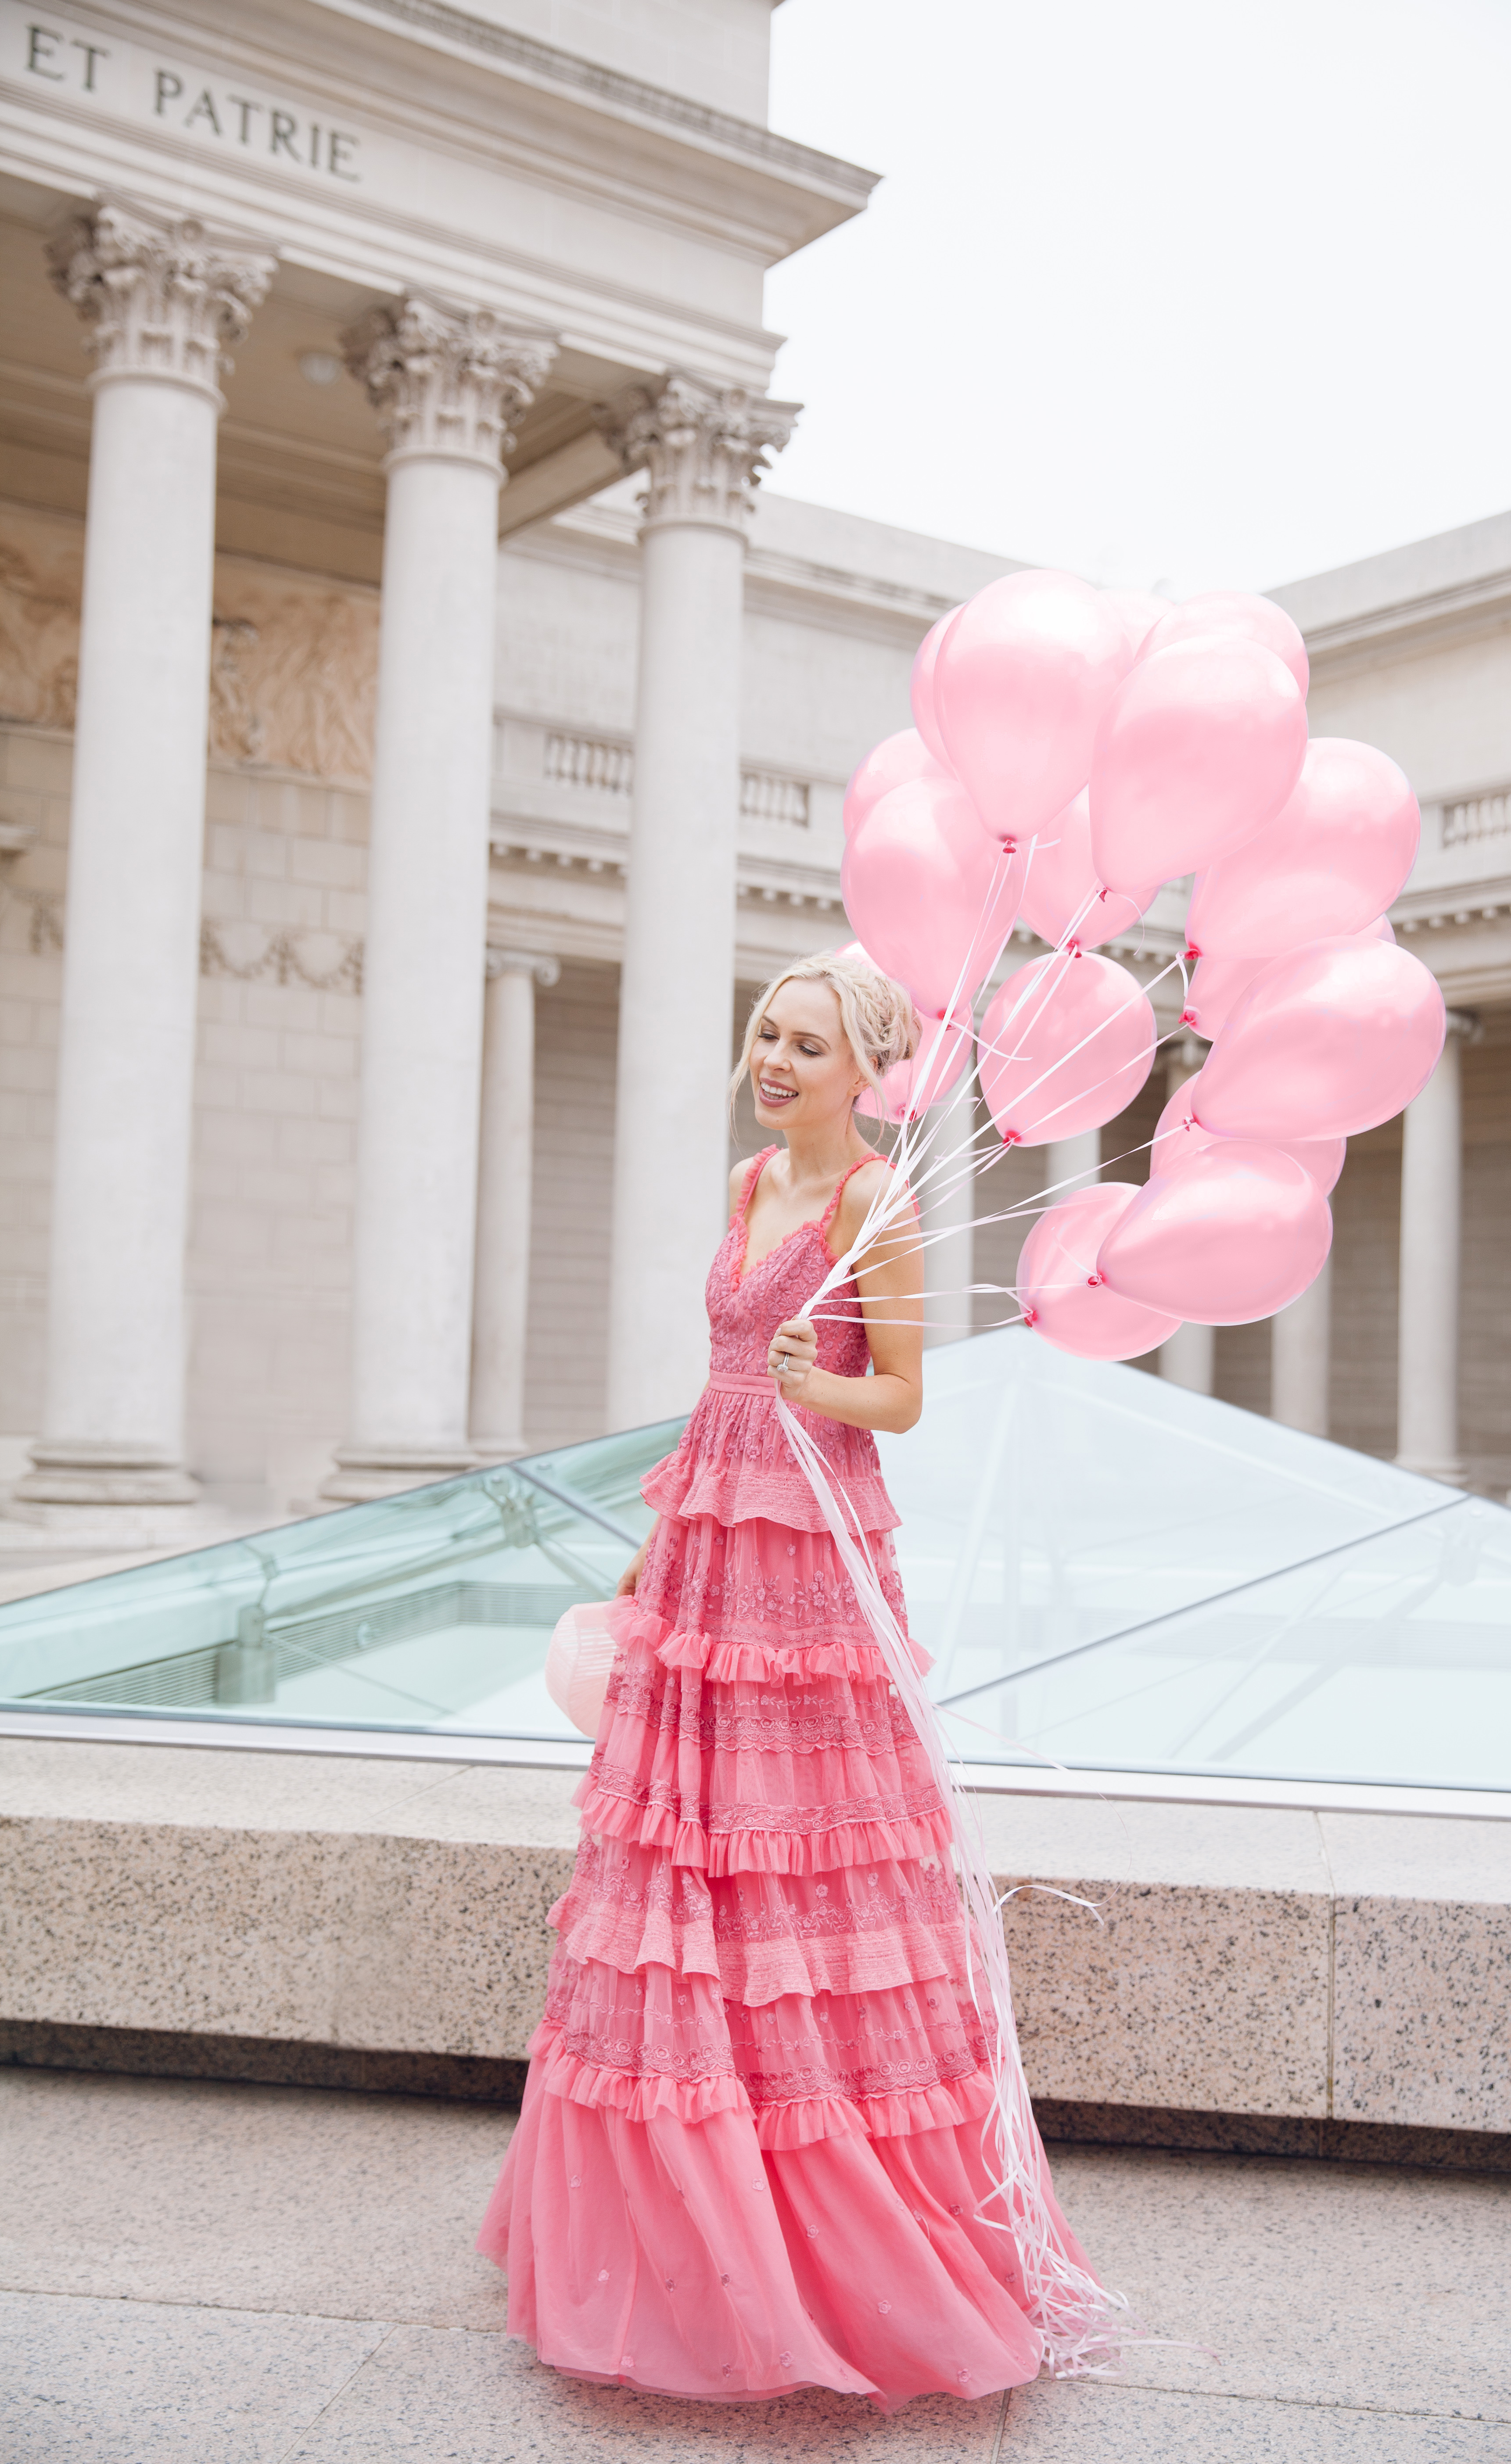 how to eBay, my style journey, needle & thread dress maxi pink embroidered | Top San Francisco fashion blog, Lombard and Fifth, features her tips on How to Ebay effectively: image of a blonde woman wearing a stunning maxi dress found on Ebay